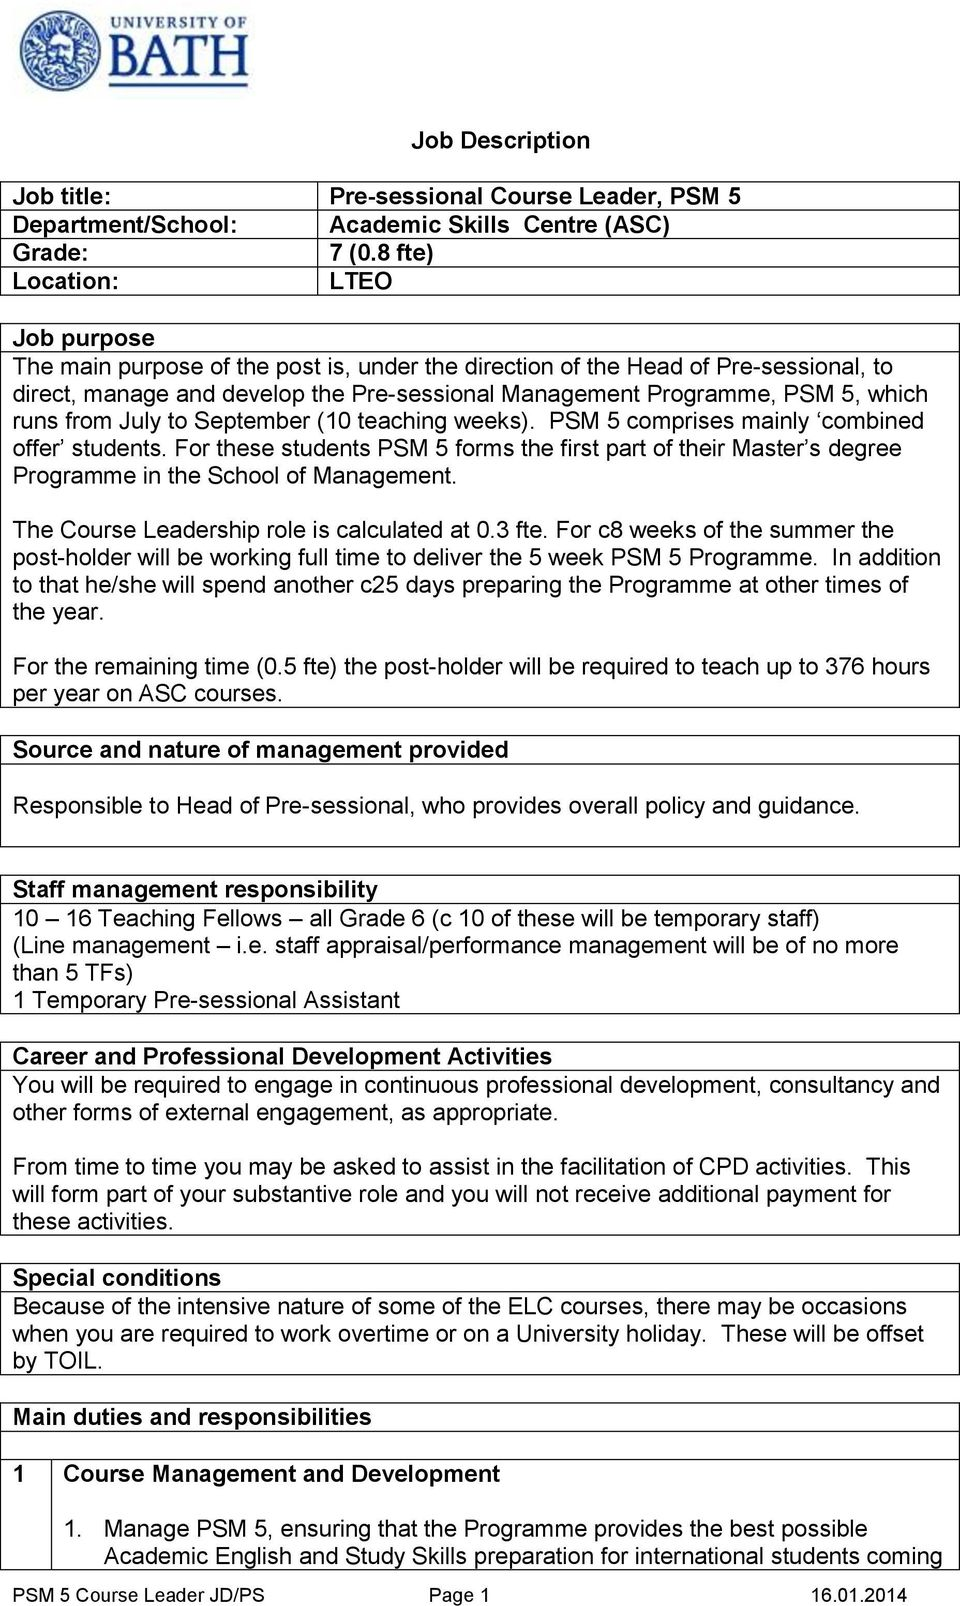 Job Description  For the remaining time (0 5 fte) the post